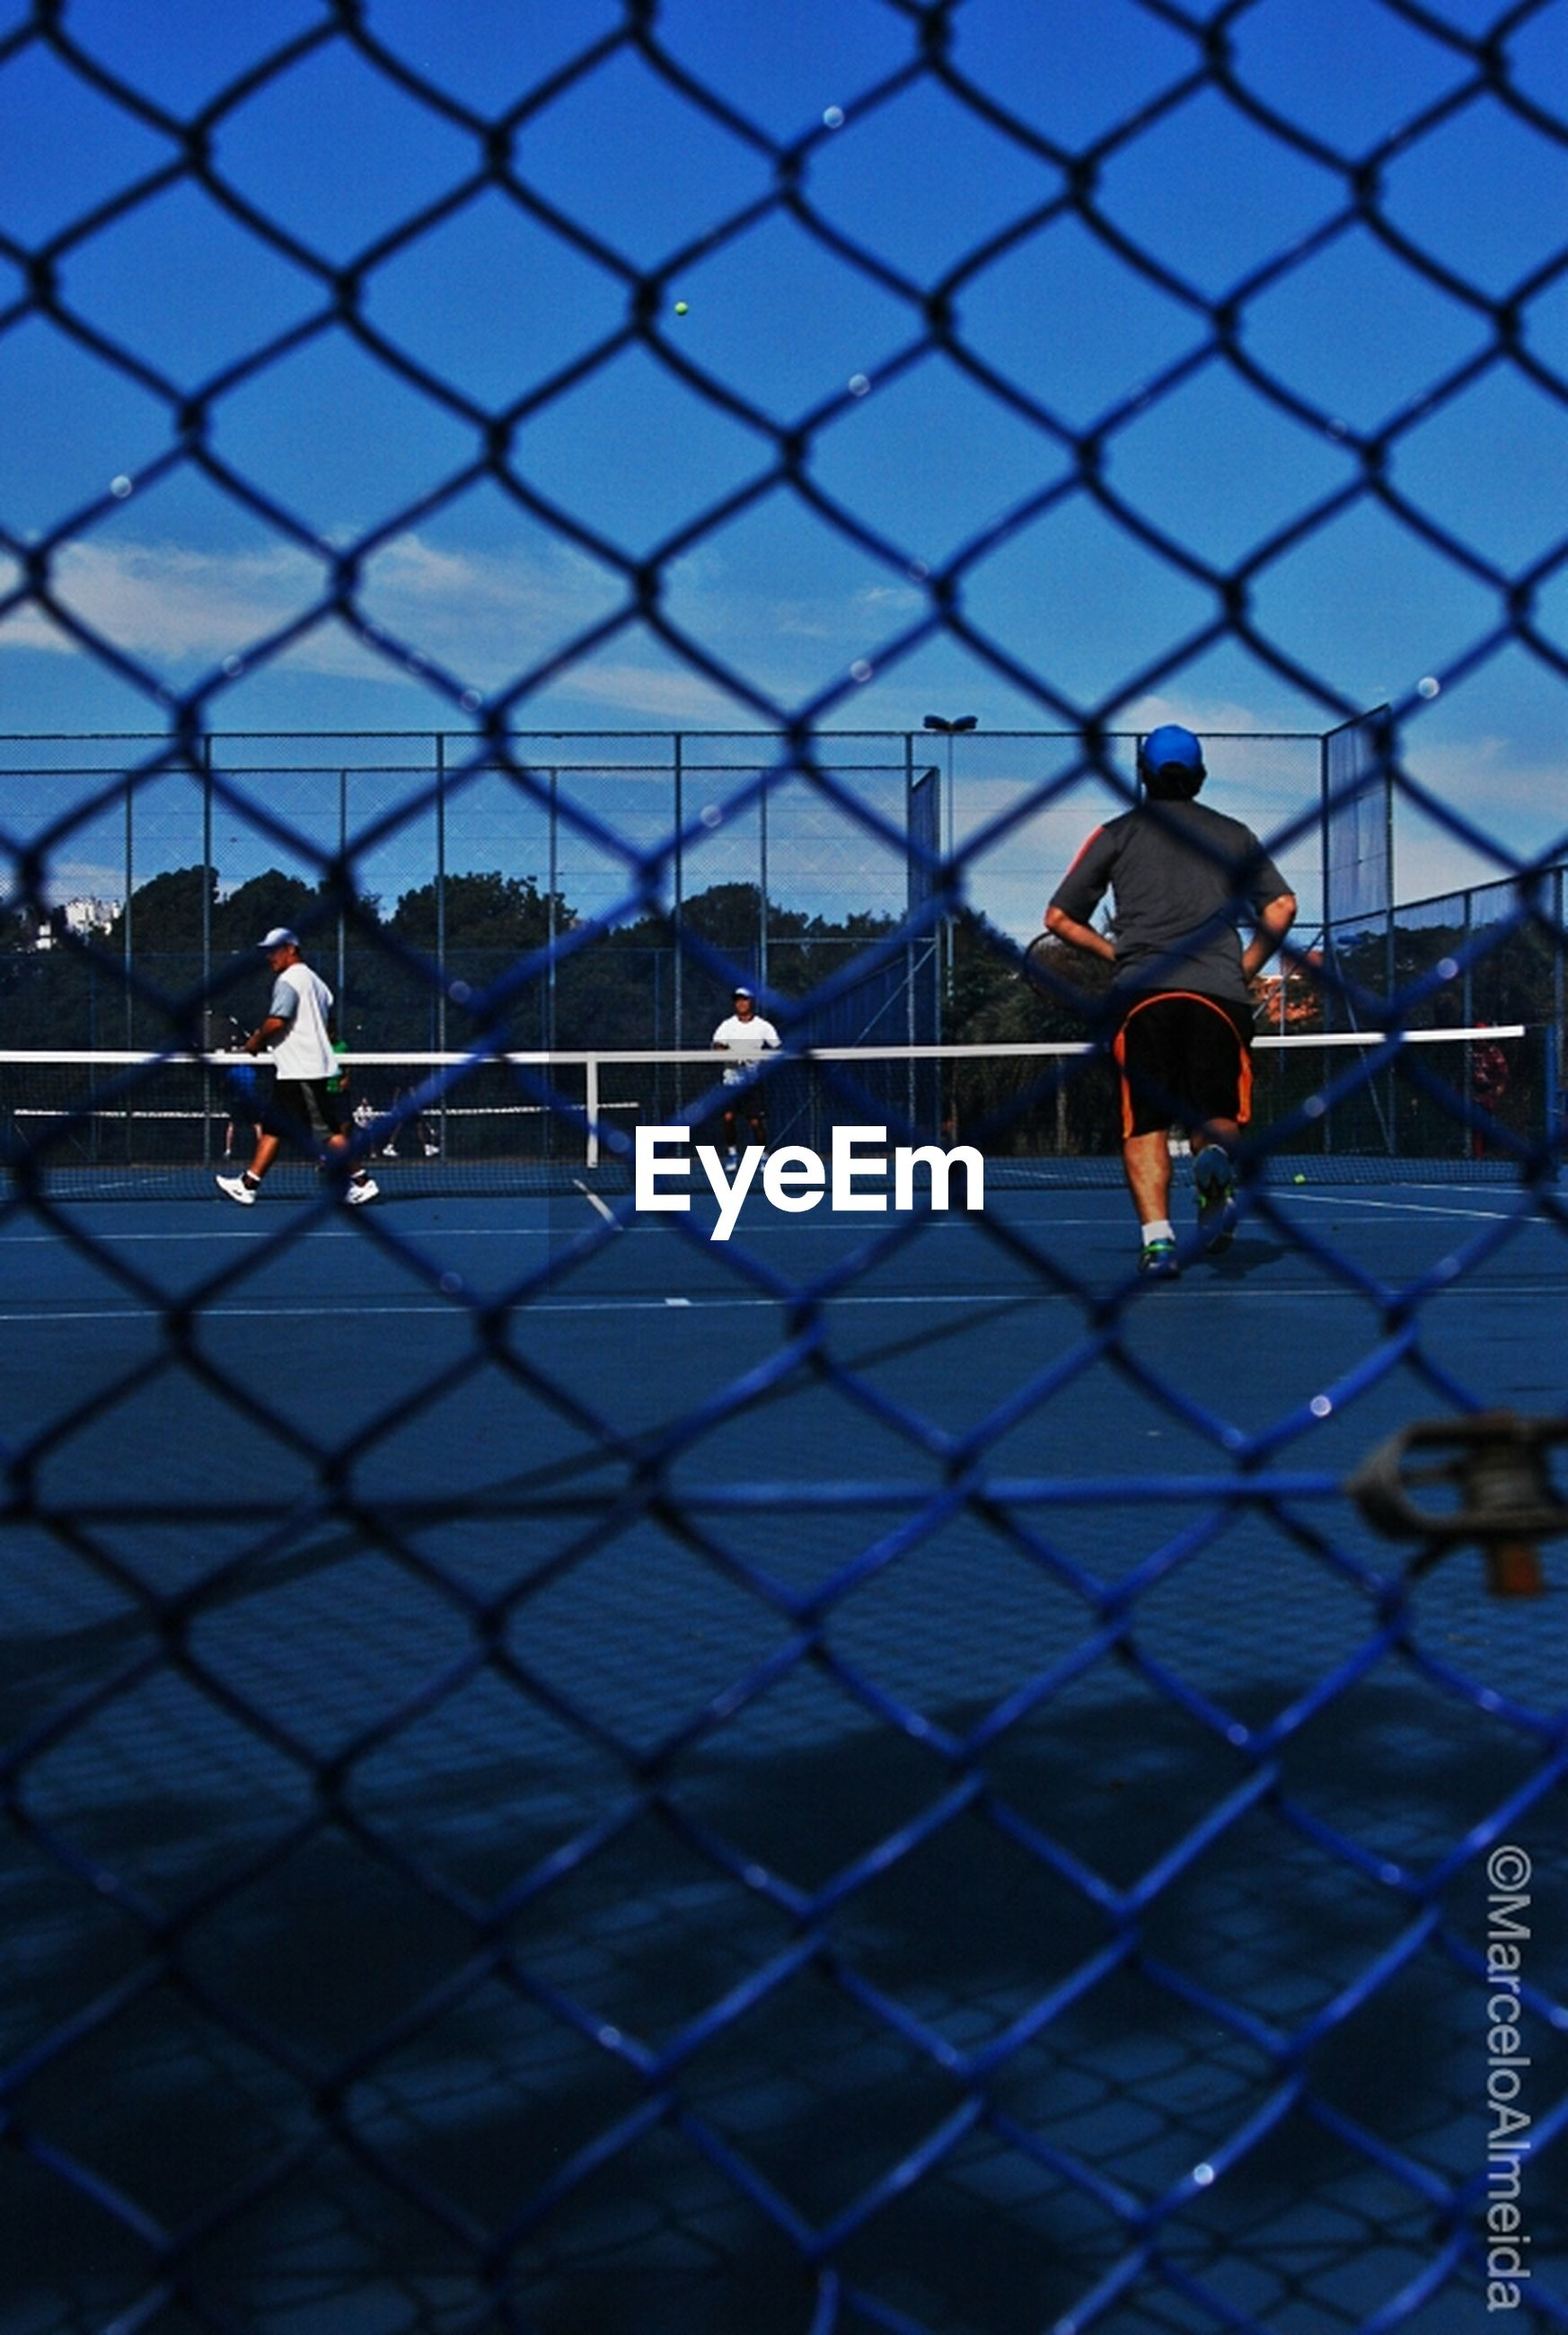 leisure activity, lifestyles, protection, sky, men, chainlink fence, safety, metal, built structure, sport, fence, blue, standing, architecture, boys, childhood, security, city